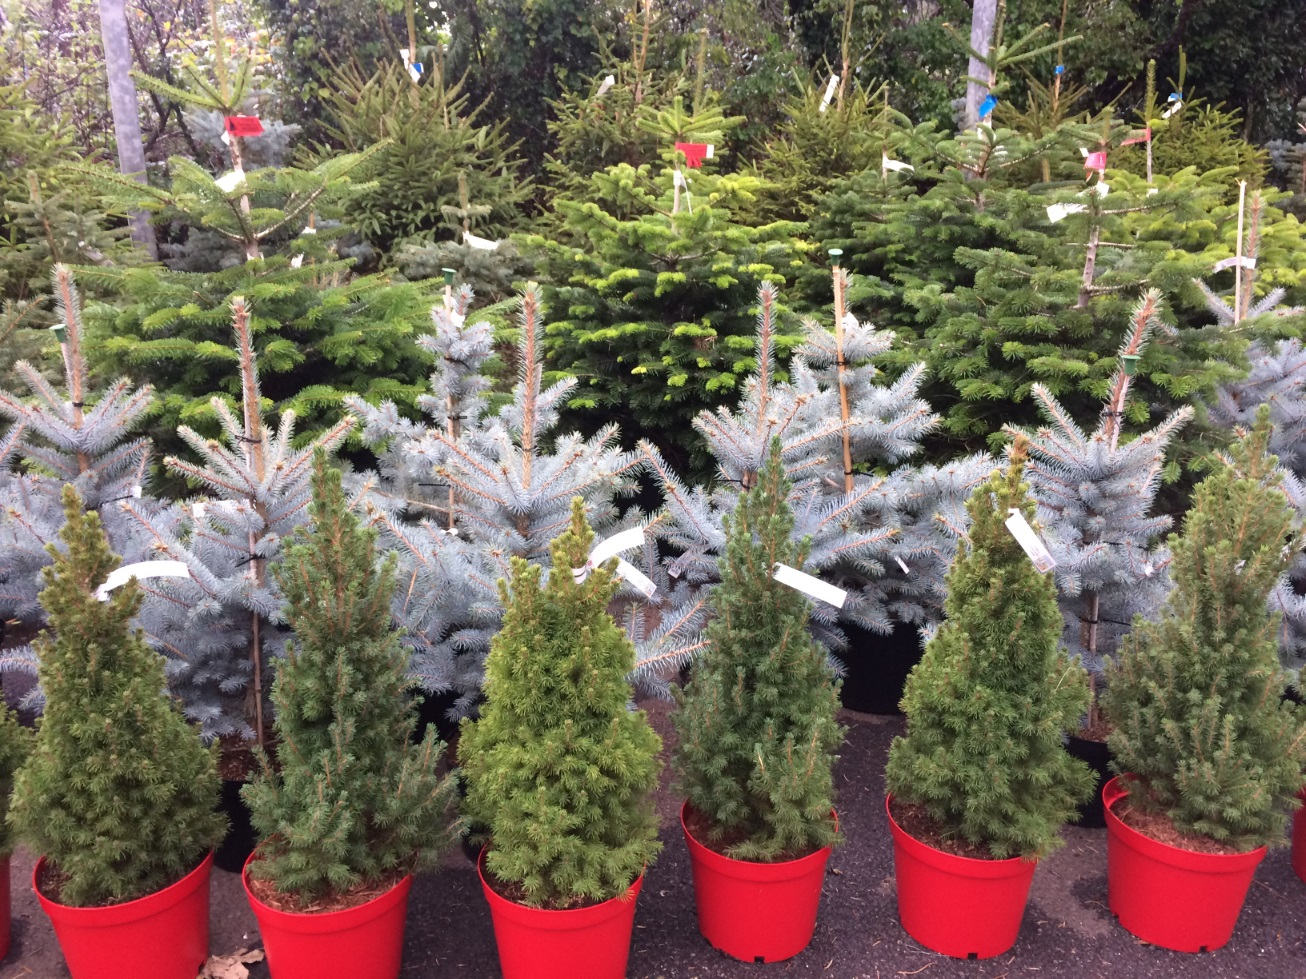 How To Water A Potted Christmas Tree To Enjoy Its Fresh Scent Beyond Holidays - GardenTipz.com